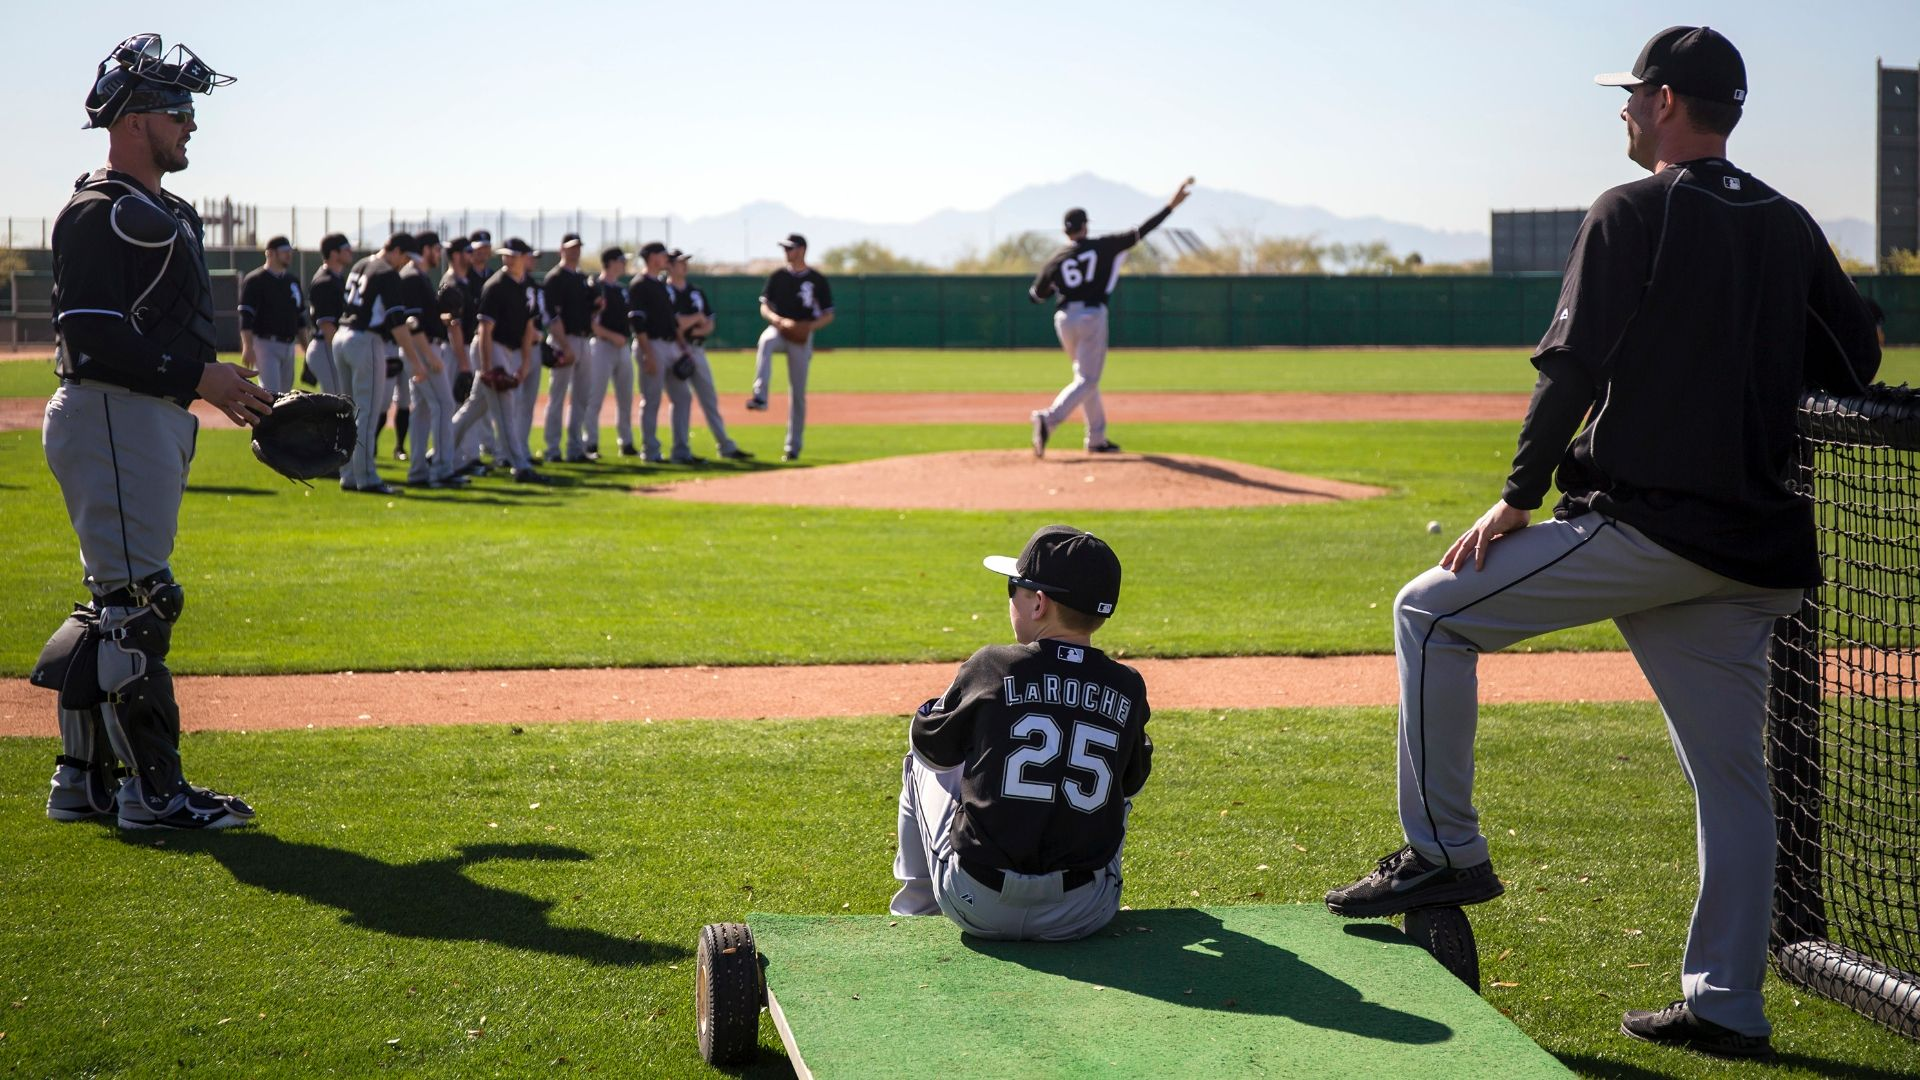 Ravech: White Sox considered boycott amid LaRoche controversy